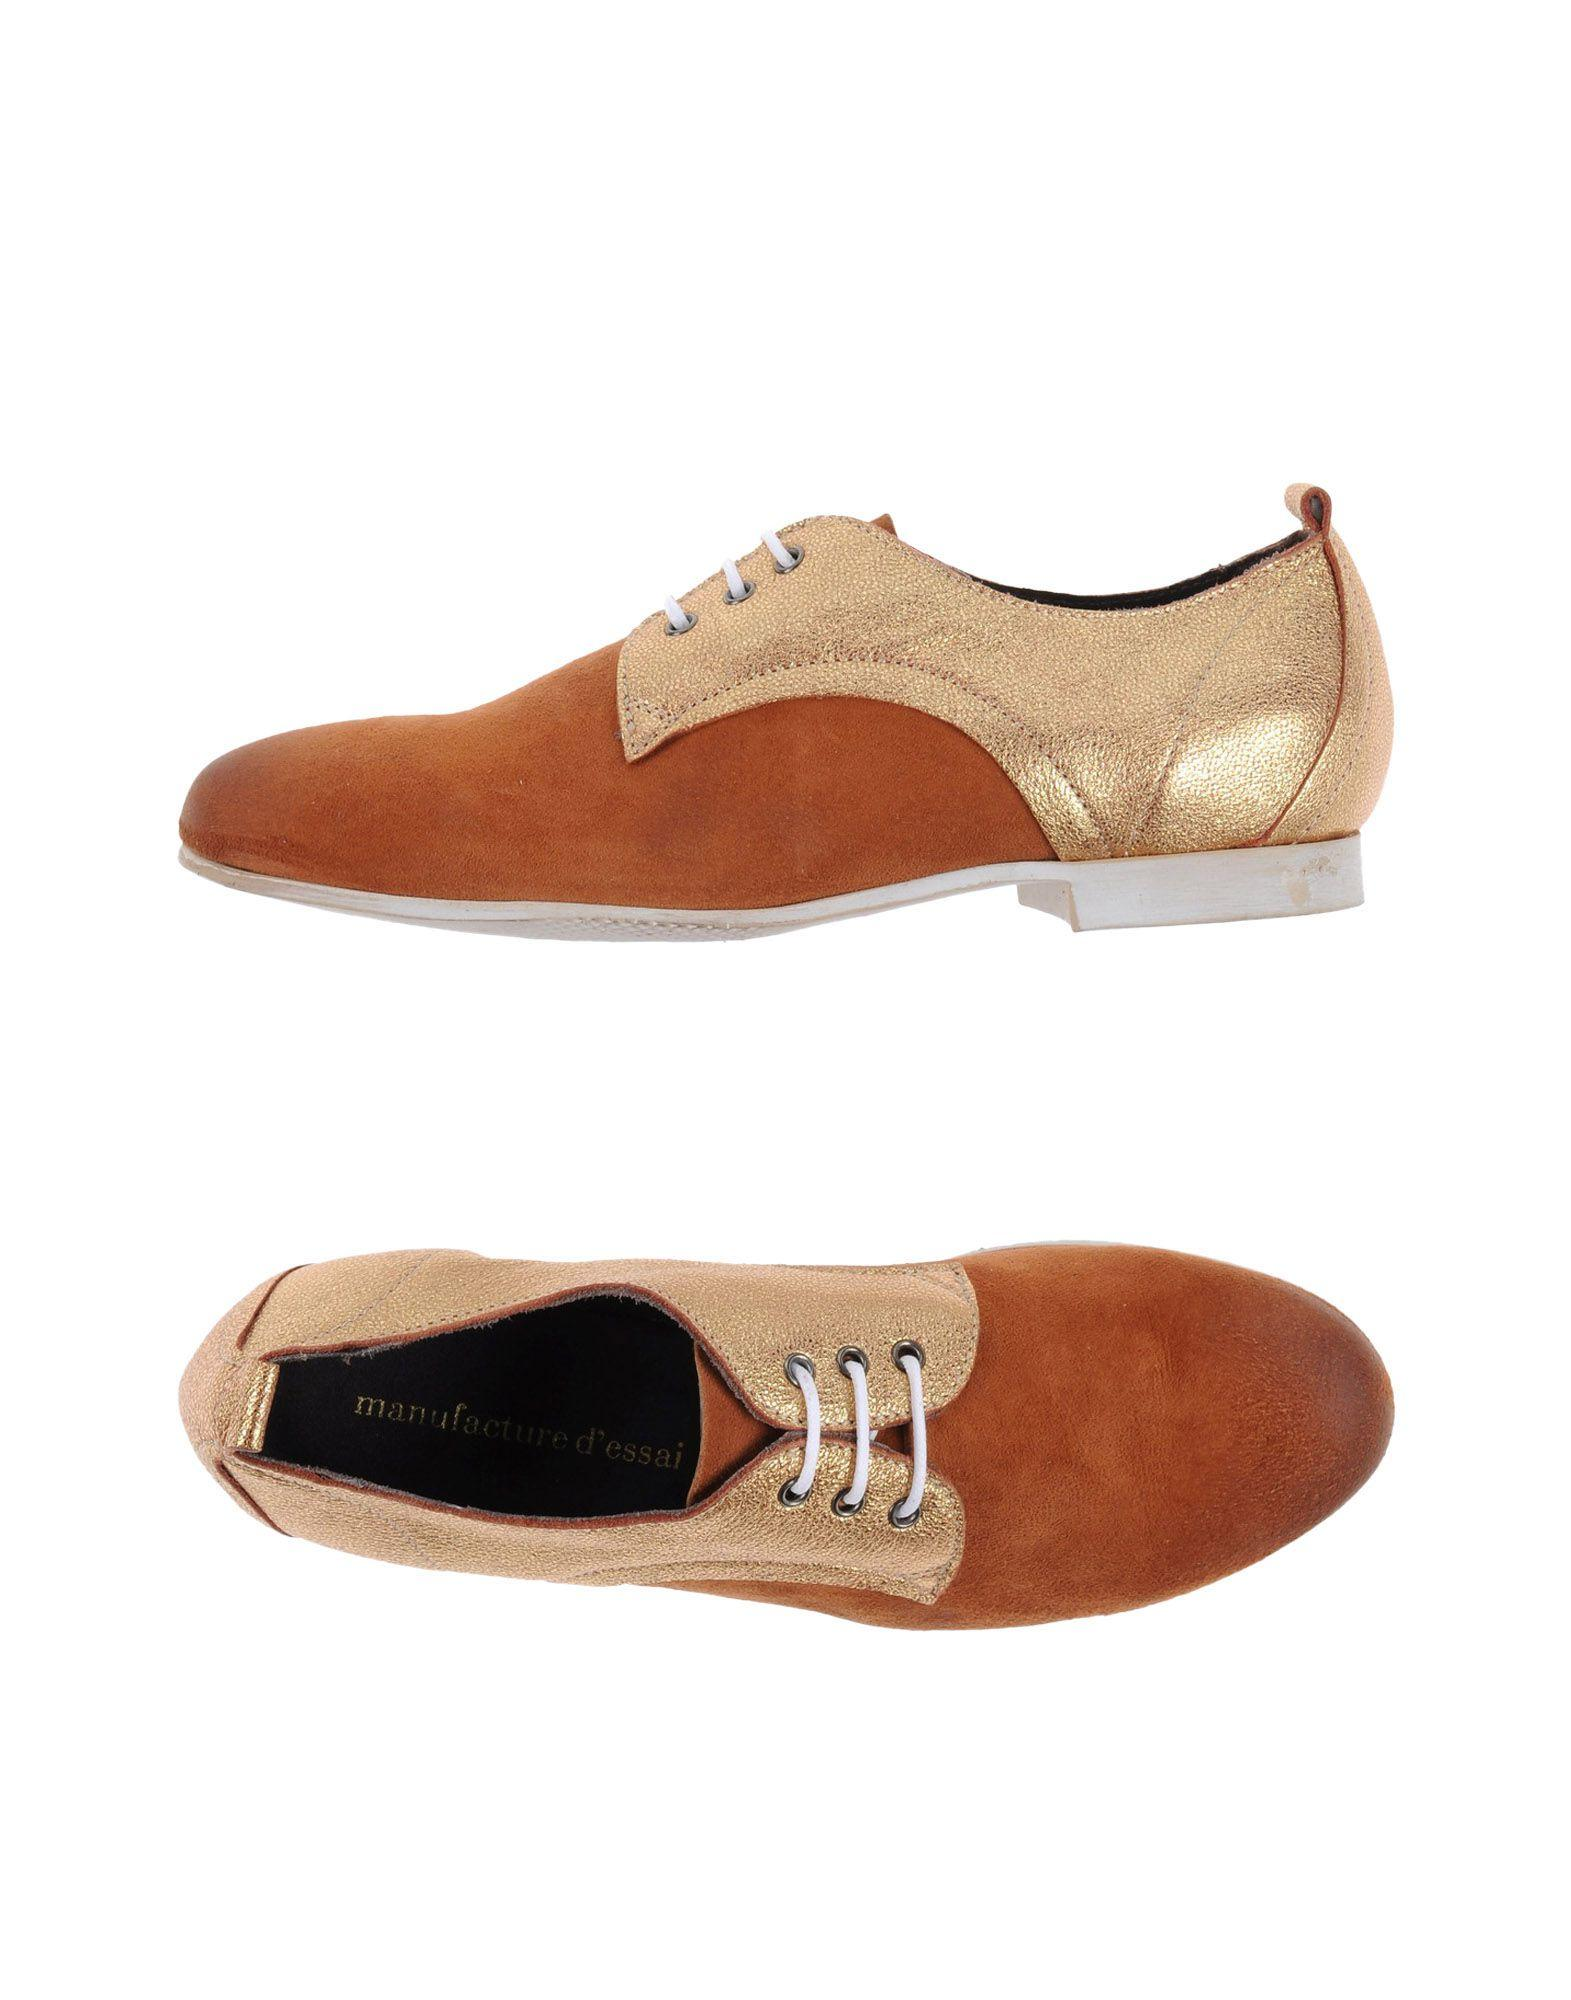 FOOTWEAR - Lace-up shoes on YOOX.COM Manufacture d'Essai gFvXz